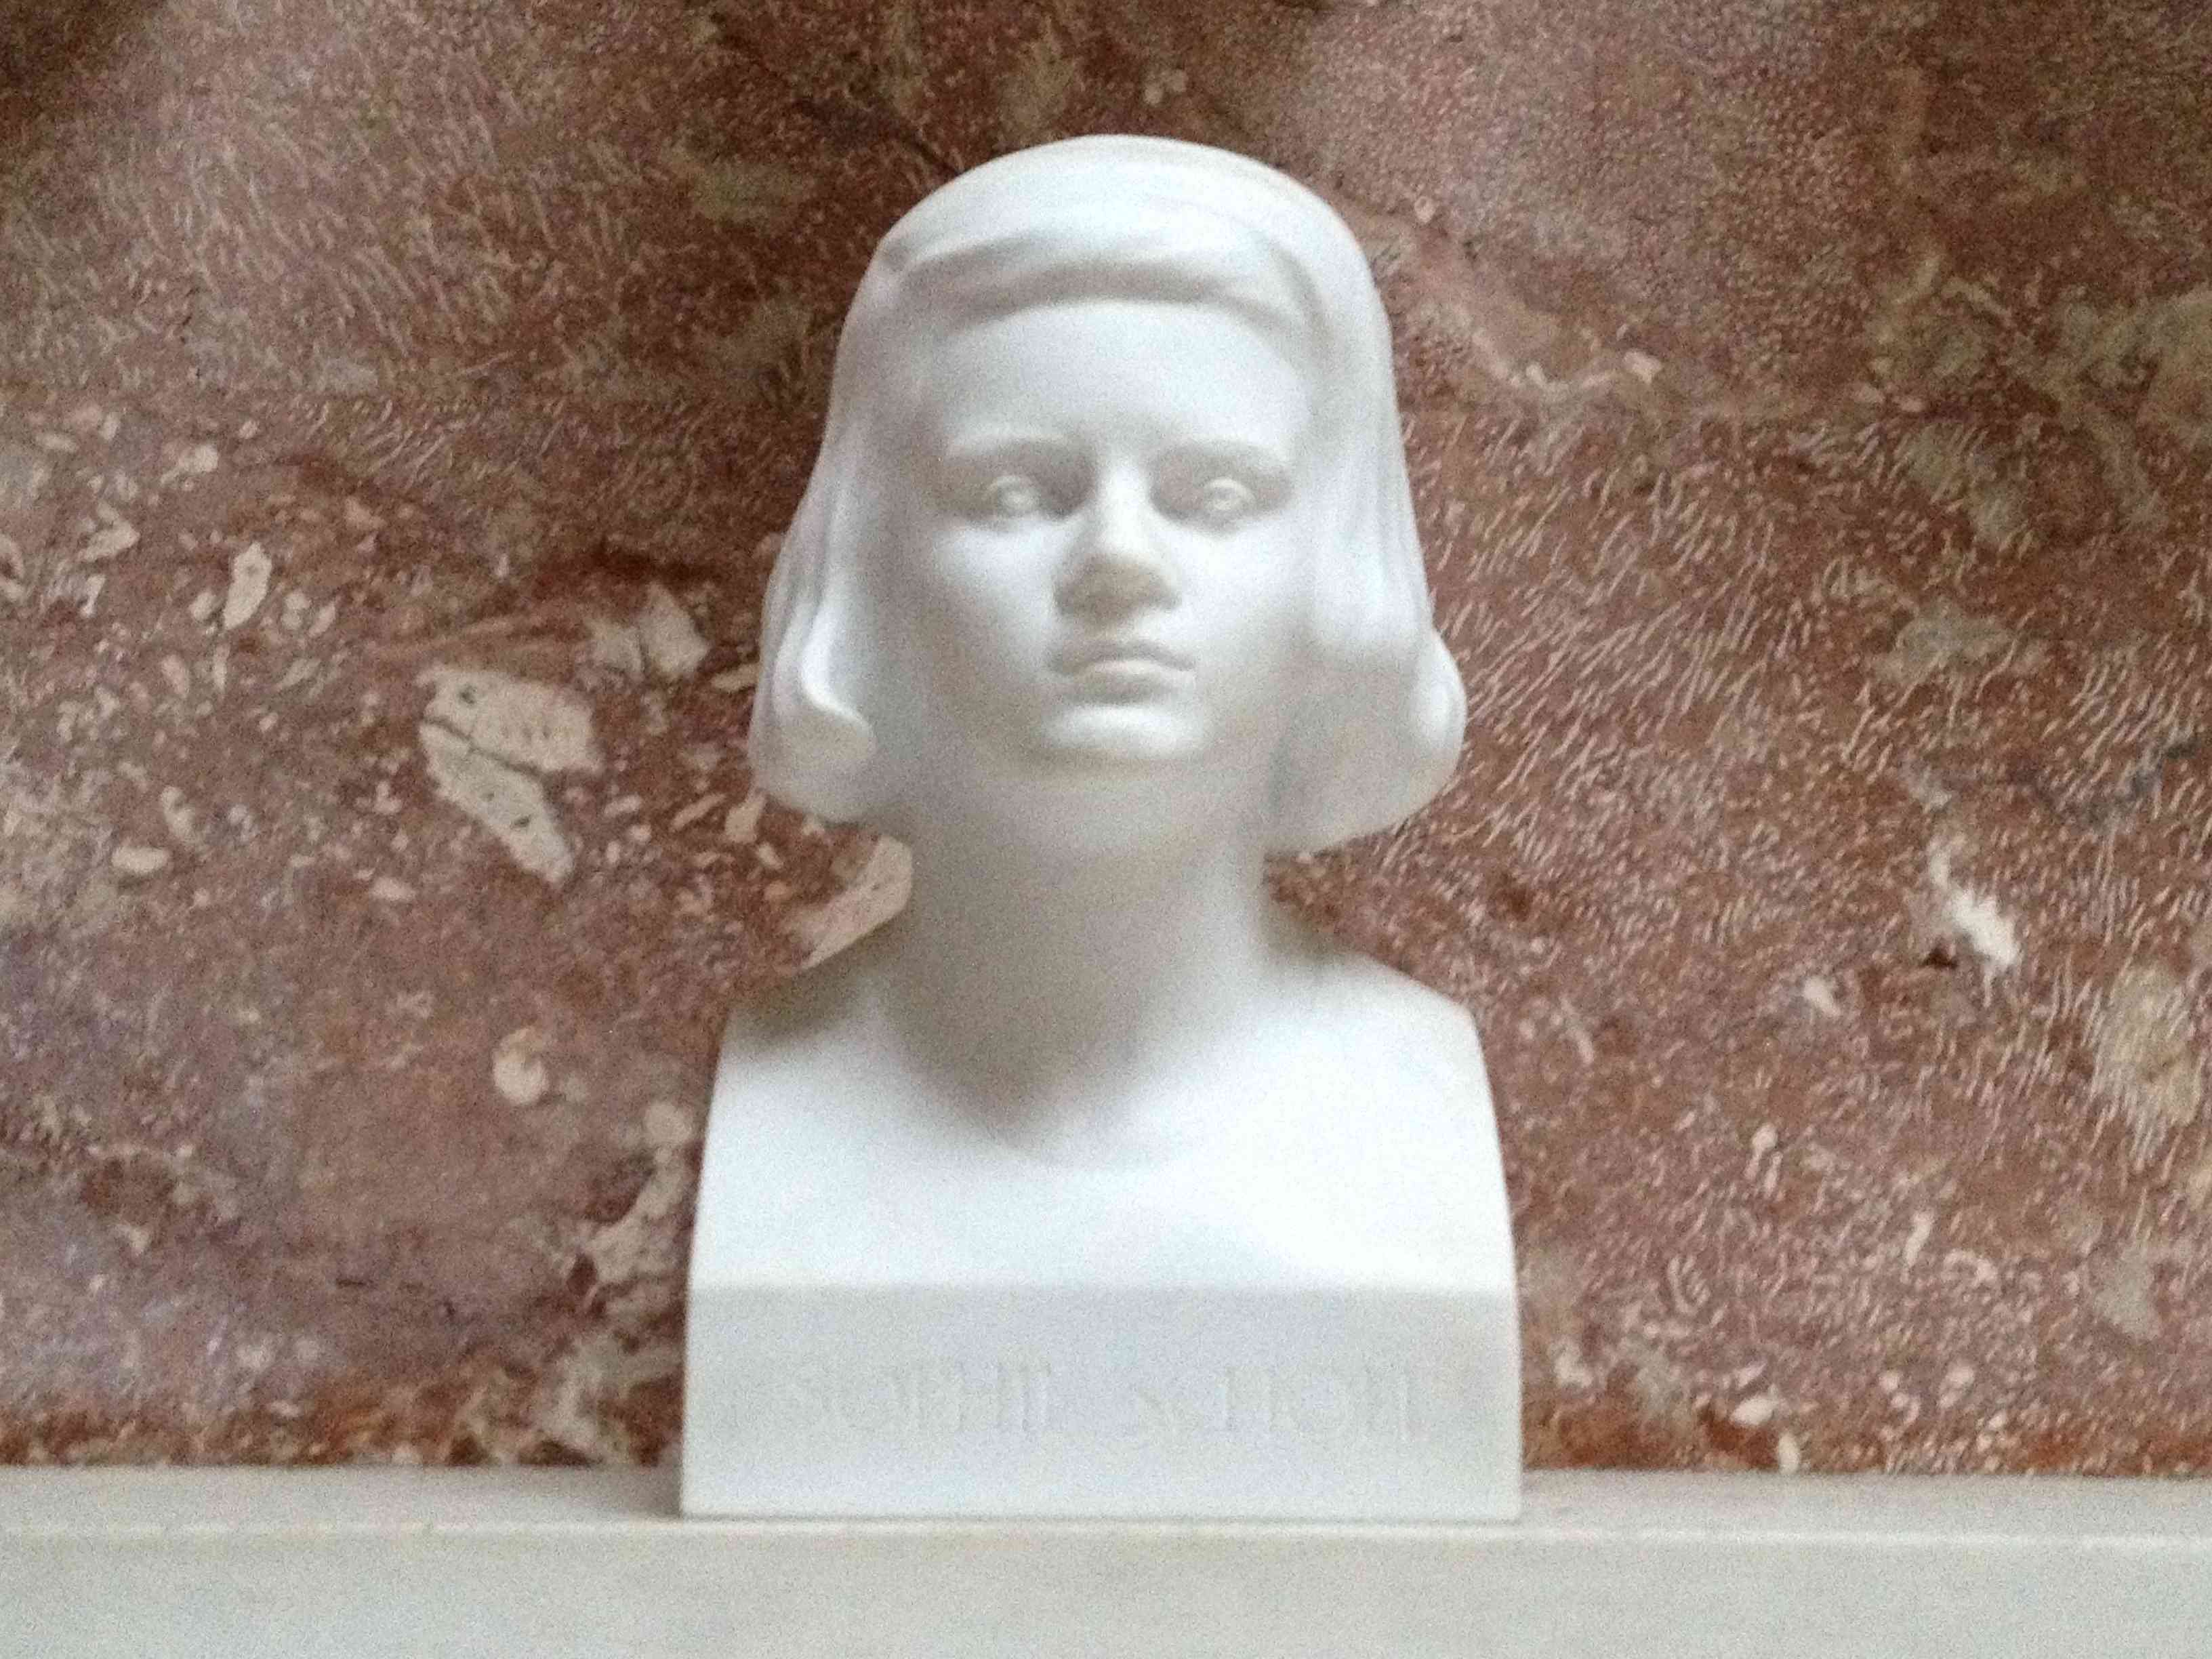 Bust of Sophie Scholl, placed in Walhalla in 2003. Sculptor: Wolfgang Eckert